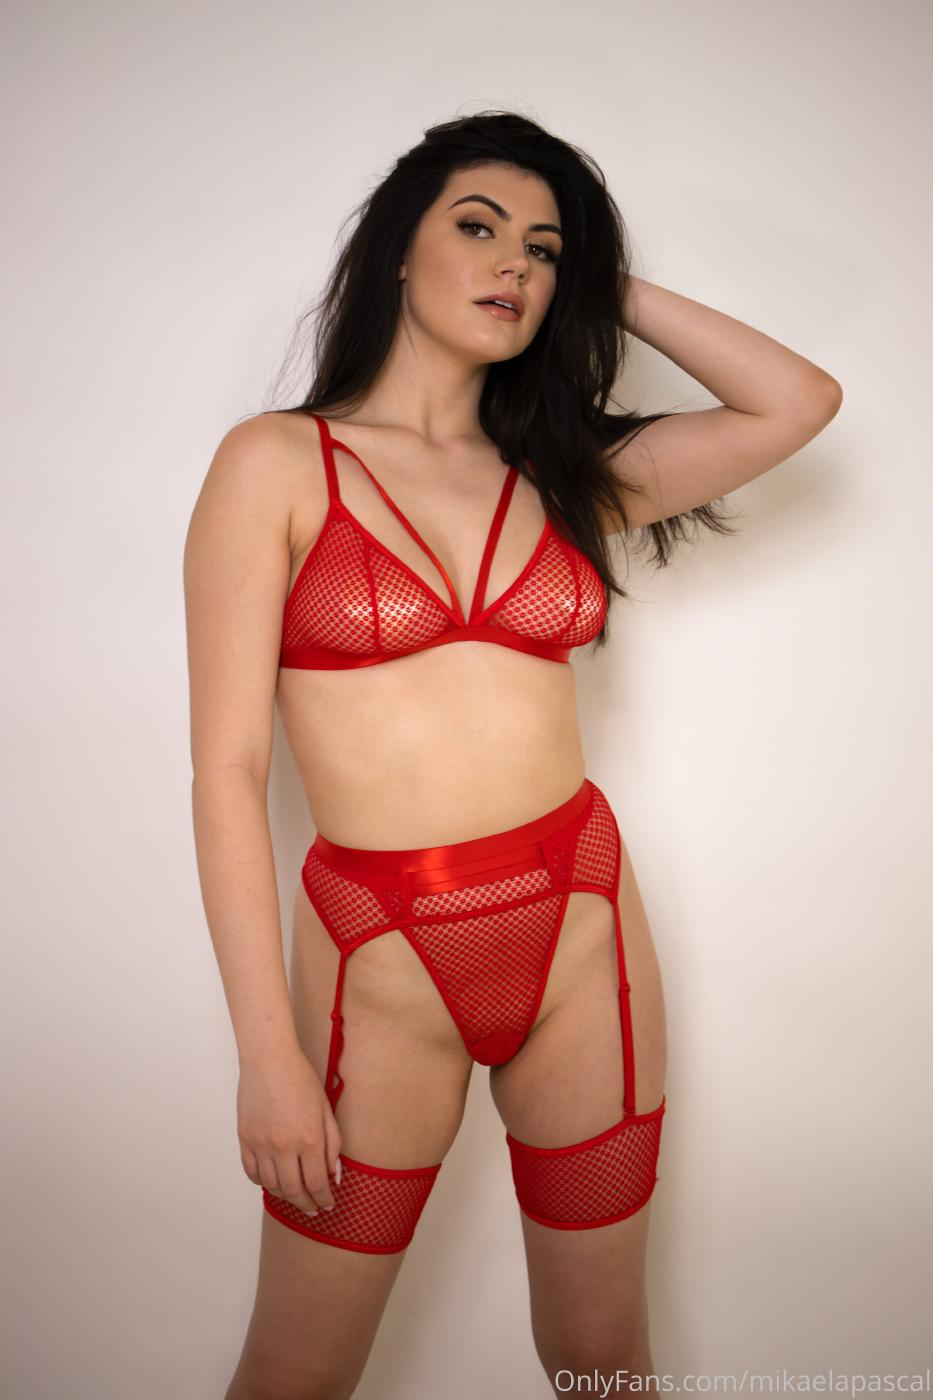 Mikaela Pascal Red Lingerie Onlyfans Set Leaked 0002